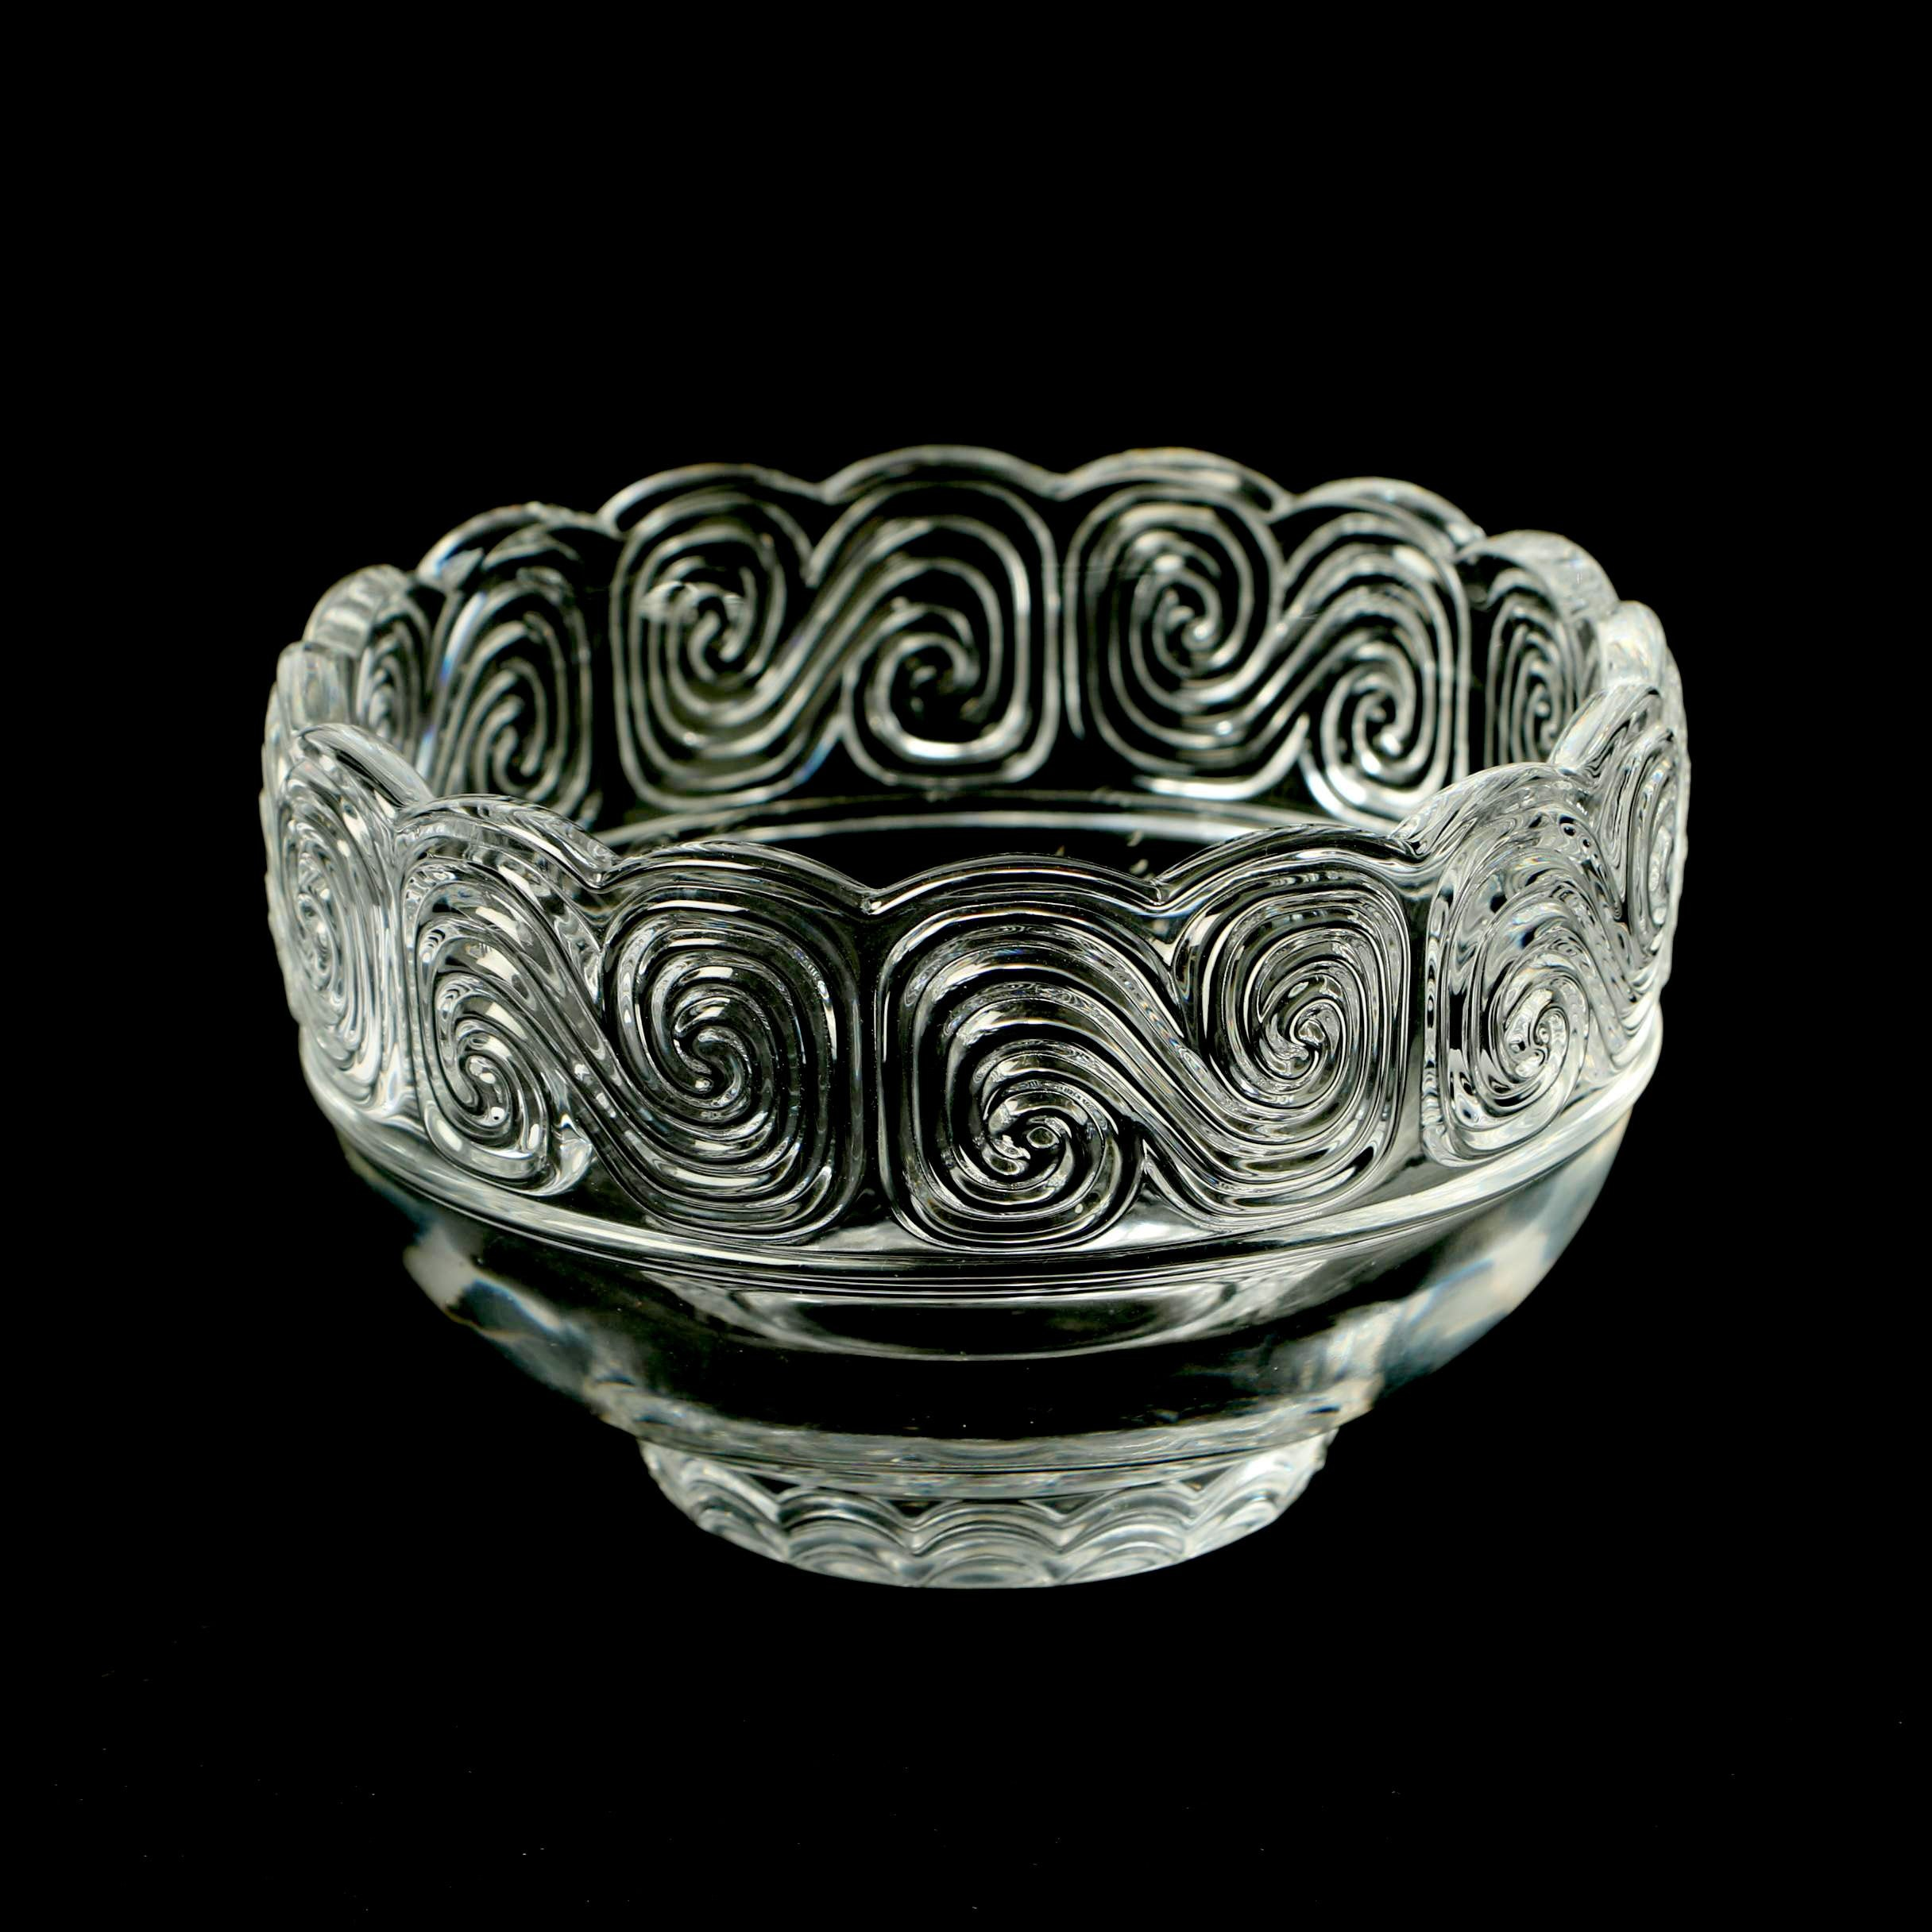 """Tiffany & Co. Louis Comfort Tiffany Collection """"Scroll"""" Crystal Bowl"""